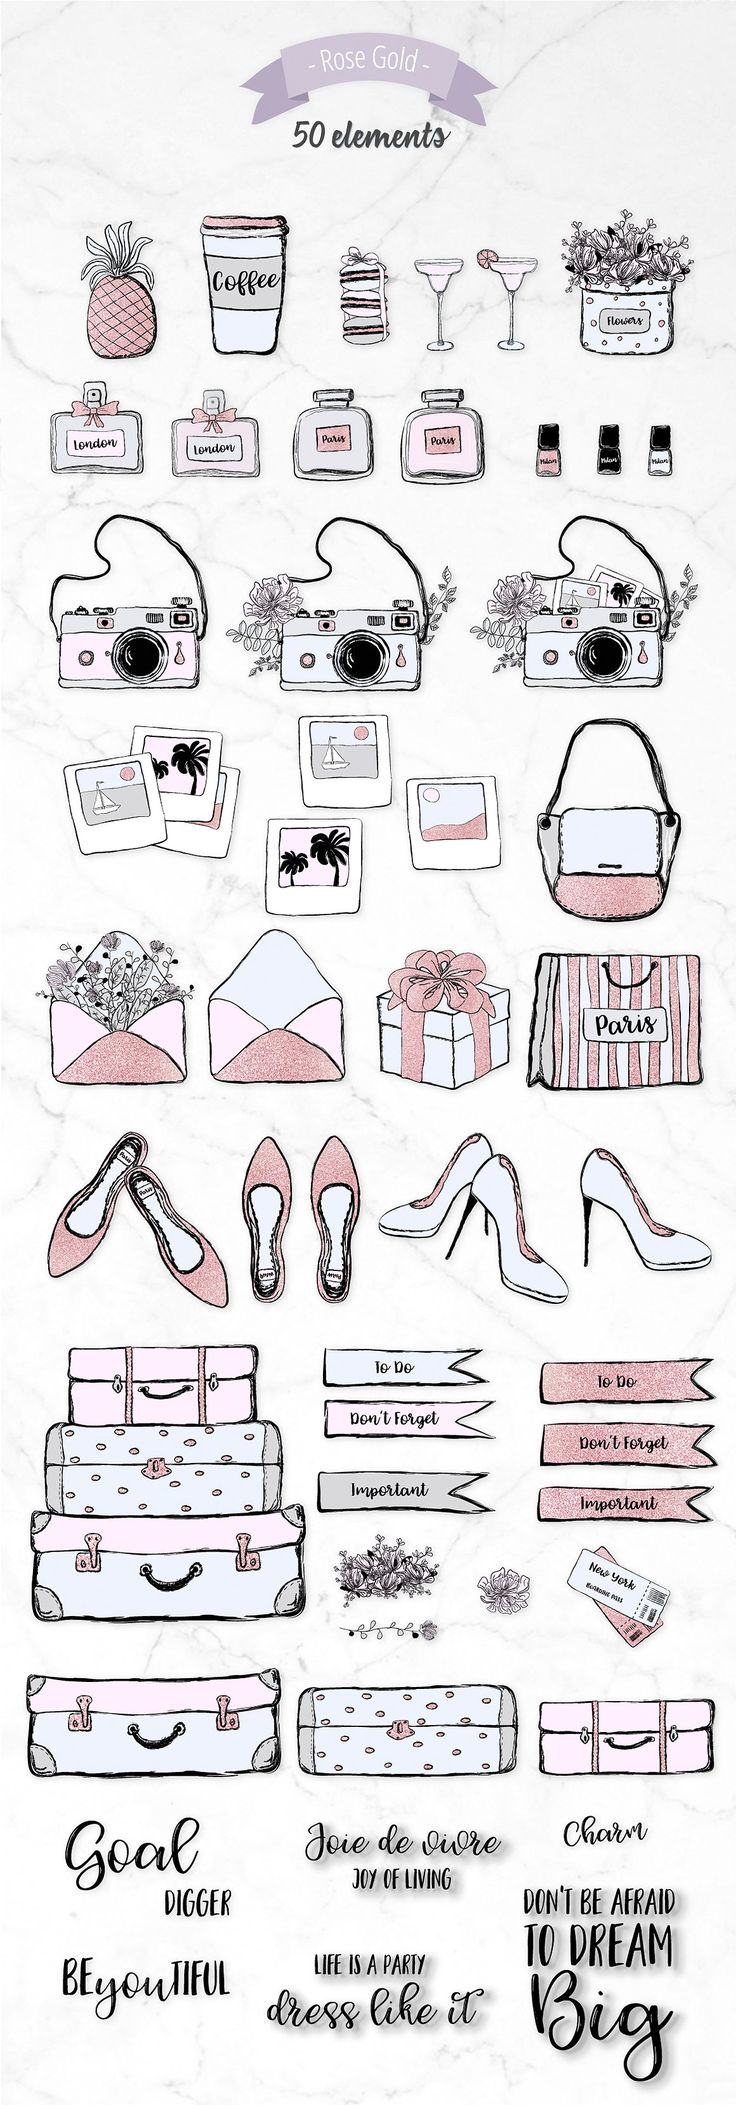 12$ 50%Off Rose Gold Planner Fashion Set by Moving Parallels on @creativemarket  Planner Diary Notebook Clipart Print Free Stickers Scrapbooking 50 gold foiled vector, fashion drawing elements made in glam sketch style, looks elegant and cool. Bundle includes the following images: high heel shoes, bags, flowers, gift box, suitcases, boarding pass travel tickets, wine glasses with drinks, French cookies macarons and etc. Pastel Scandinavian colors with rose gold glitter